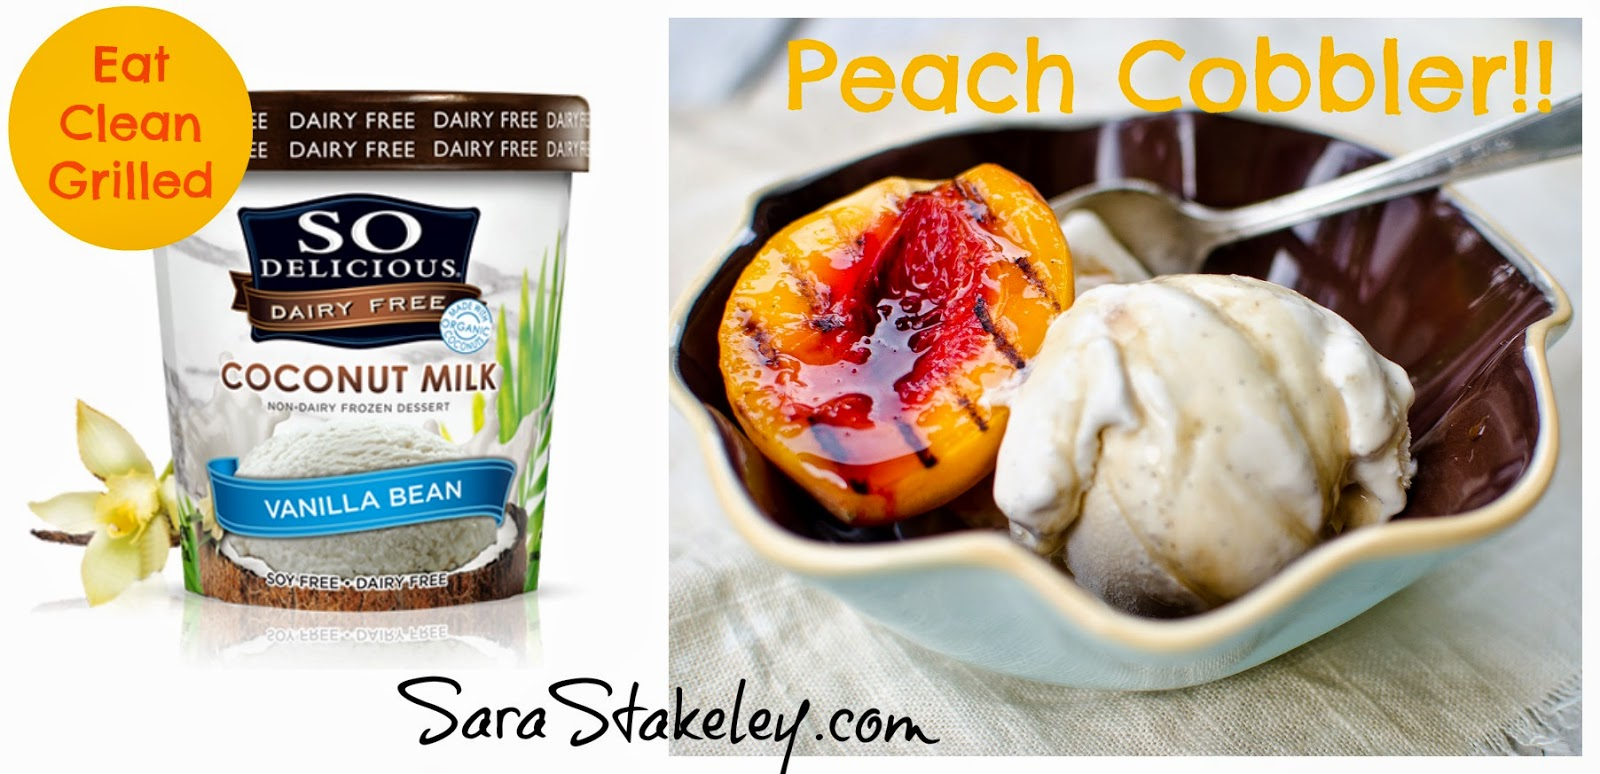 desert, cobbler, eat clean desert, dairy-free, eat clean, Sara Stakeley, Sarastakeley.com, recipes, PCOS chef, memorial day, picnic, grill,summer , easy, healthy, cobbler alternative , love food, foodie, cook, party,